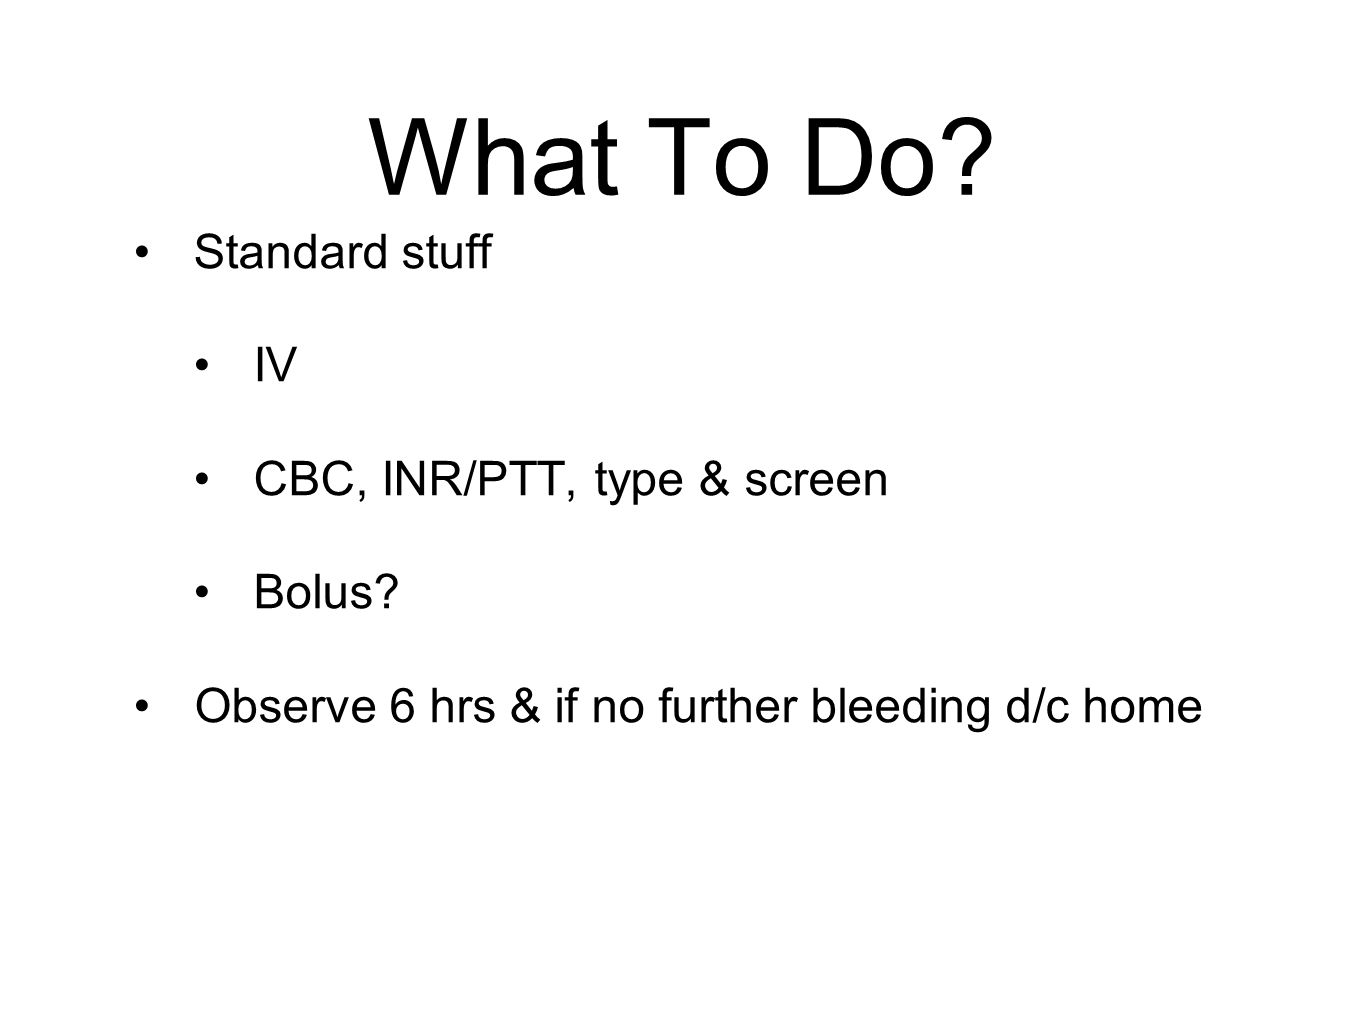 What To Do? Standard stuff IV CBC, INR/PTT, type & screen Bolus? Observe 6 hrs & if no further bleeding d/c home